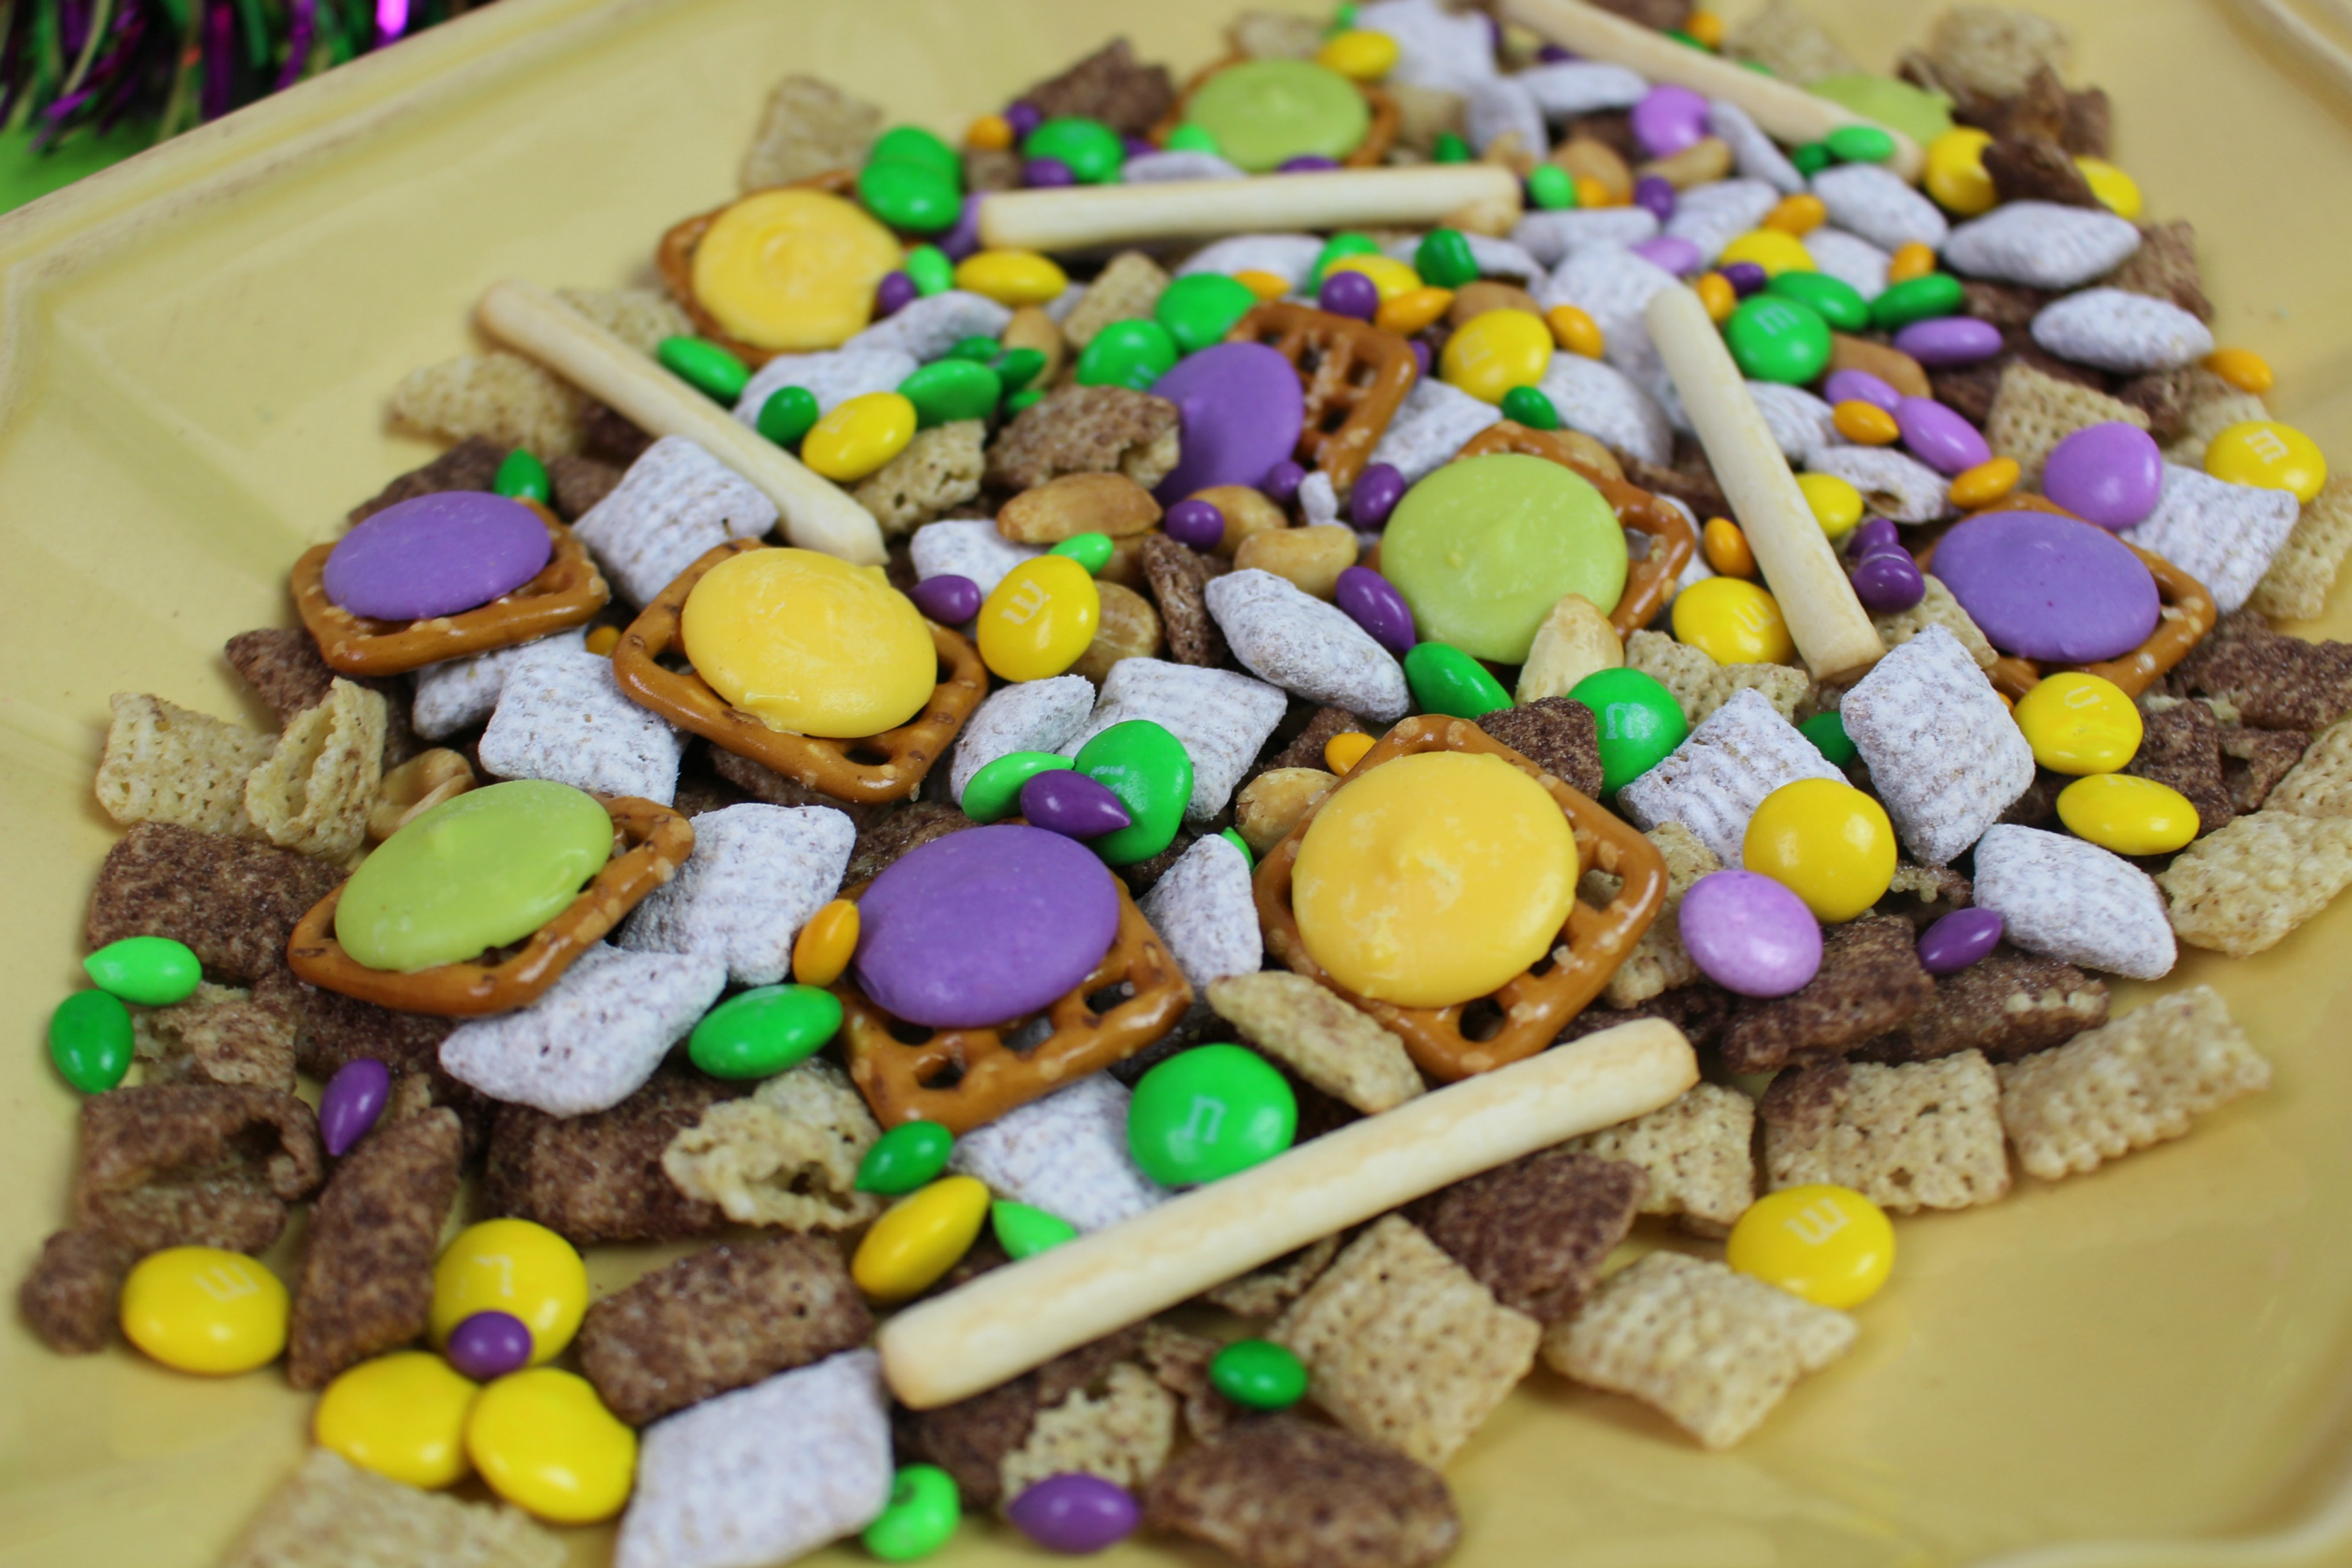 purple, yellow and green pretzel, chocolate and chex cereal snack mix on yellow plate